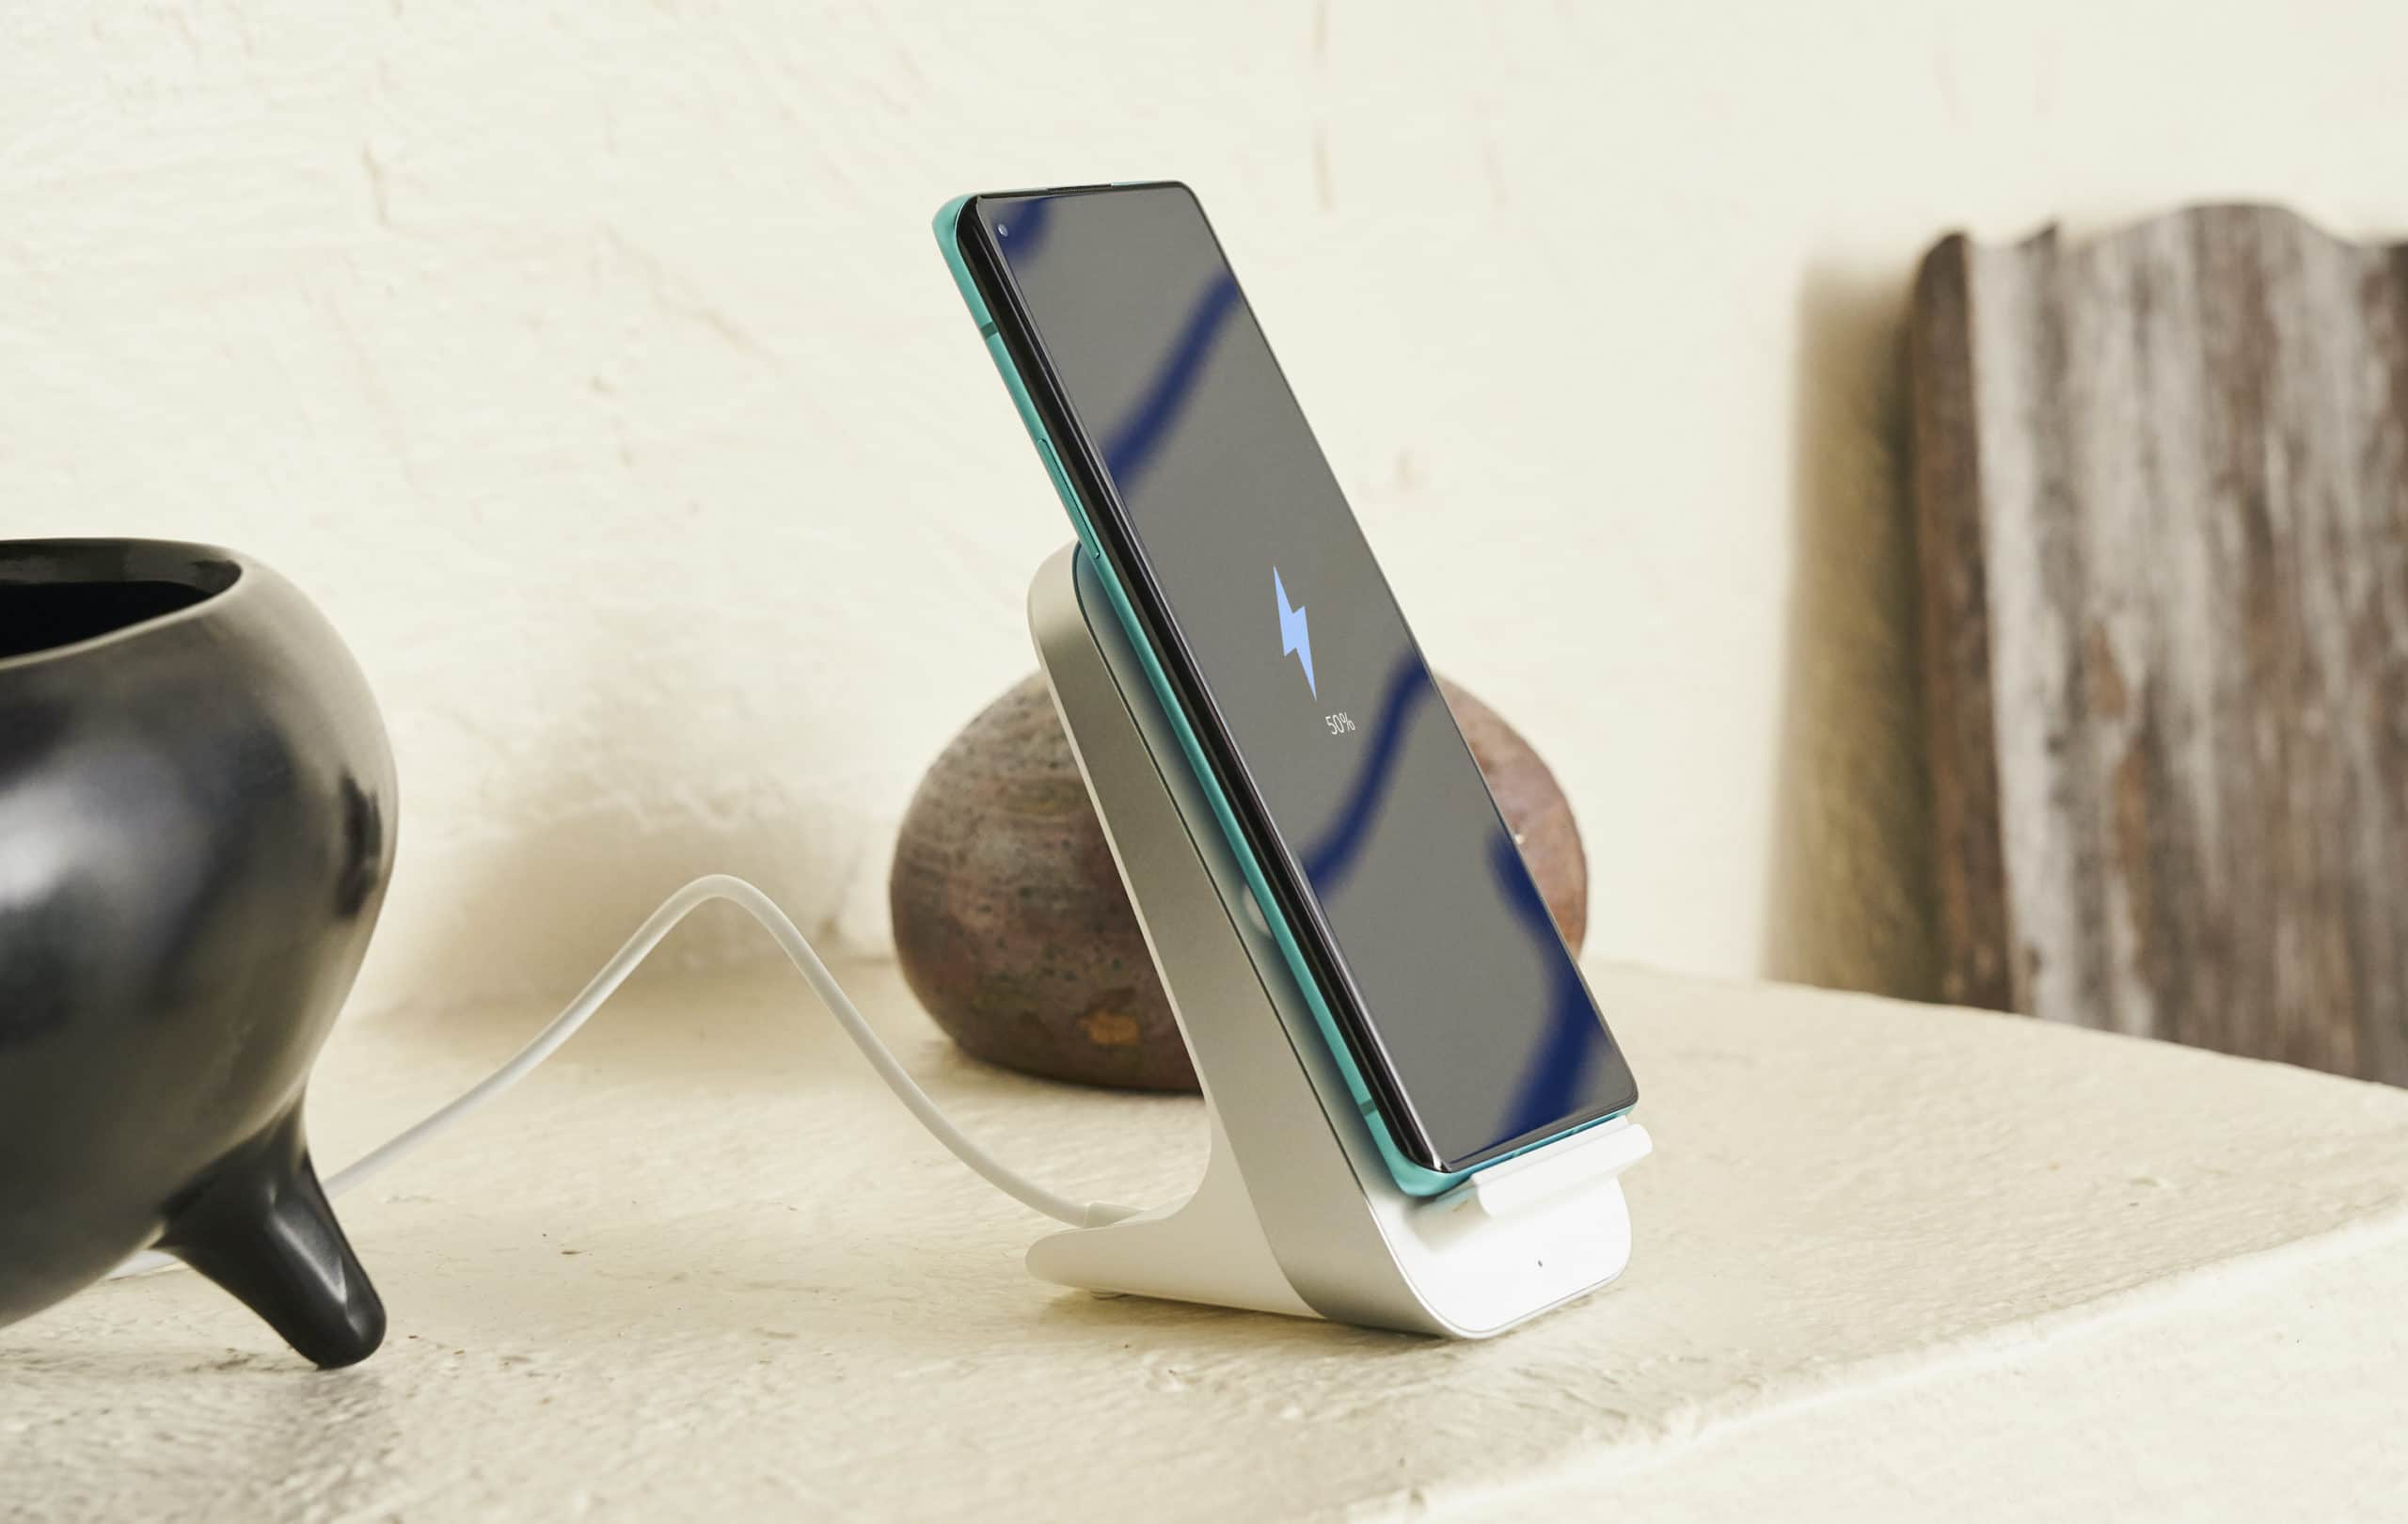 OnePlus Warp charge wireless charger